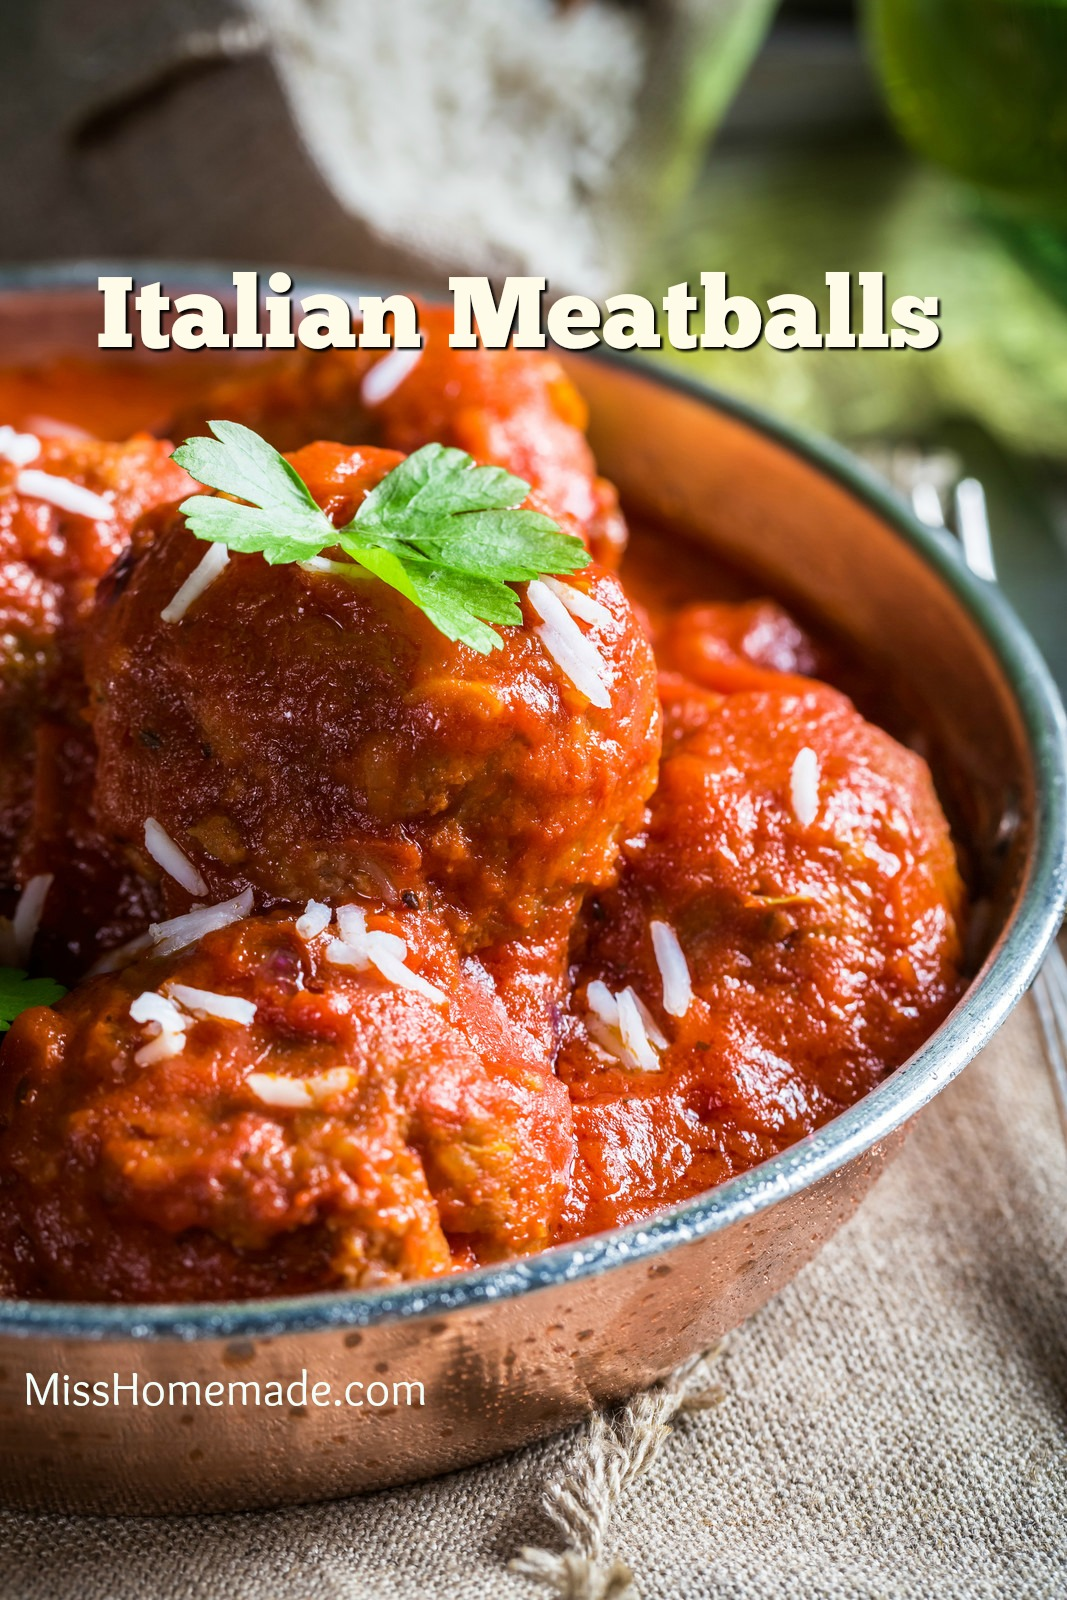 Italian Meatballs - Juicy, seasoned perfectly and so flavorful.  A must?  Make my homemade sauce to go with them.  This and more at MissHomemade.com